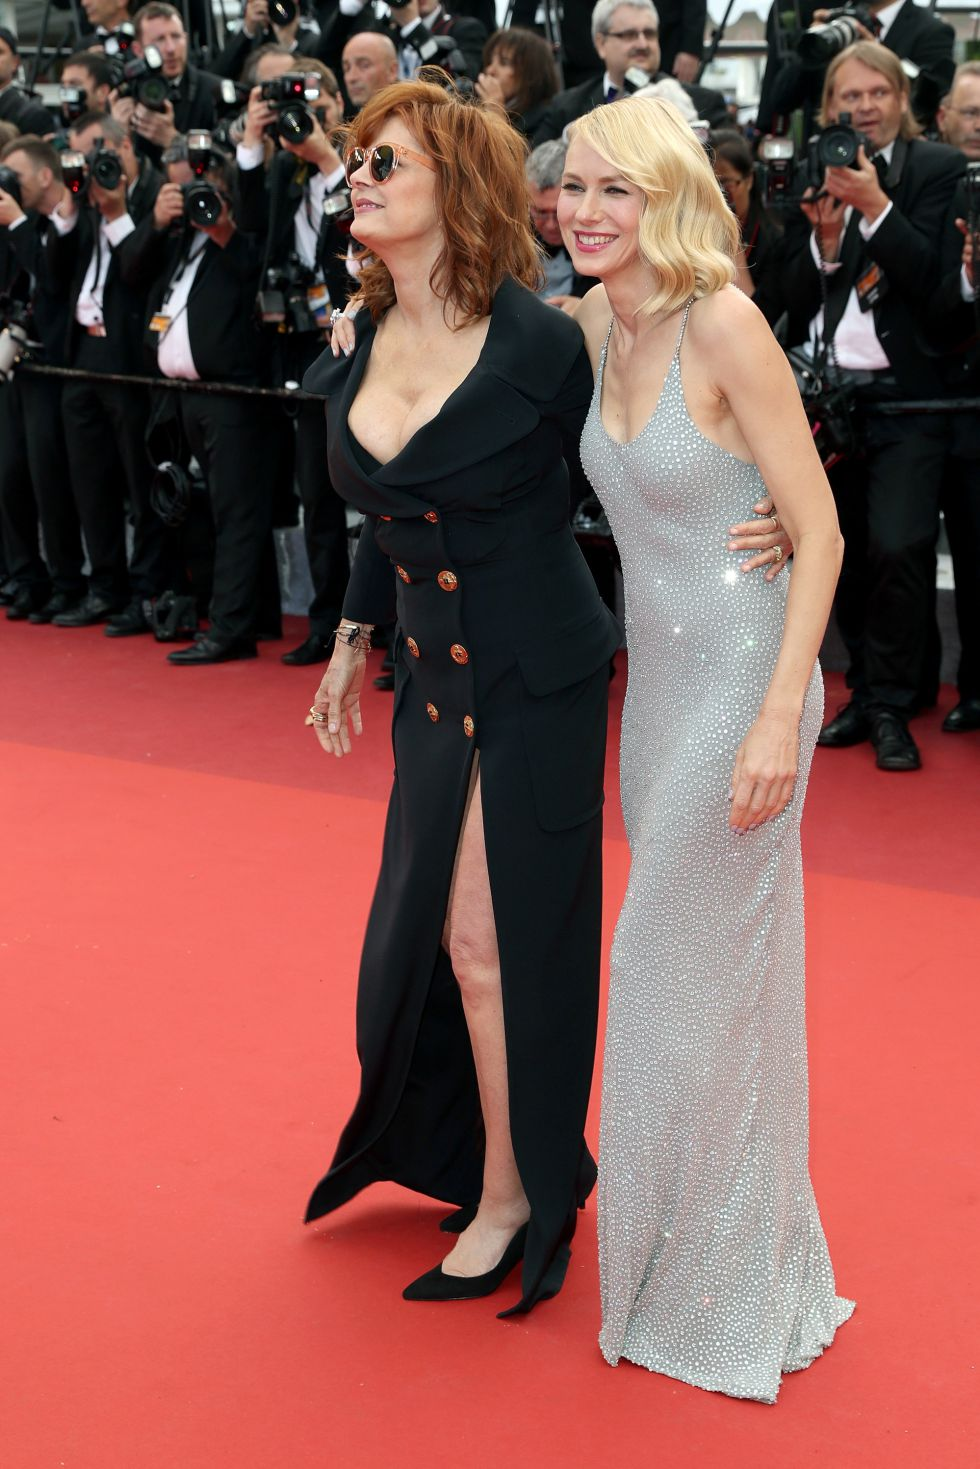 """CANNES, FRANCE - MAY 12: Susan Sarandon and Naomi Watts attend the screening of """"Money Monster"""" at the annual 69th Cannes Film Festival at Palais des Festivals on May 12, 2016 in Cannes, France. (Photo by Luca Teuchmann/WireImage)"""